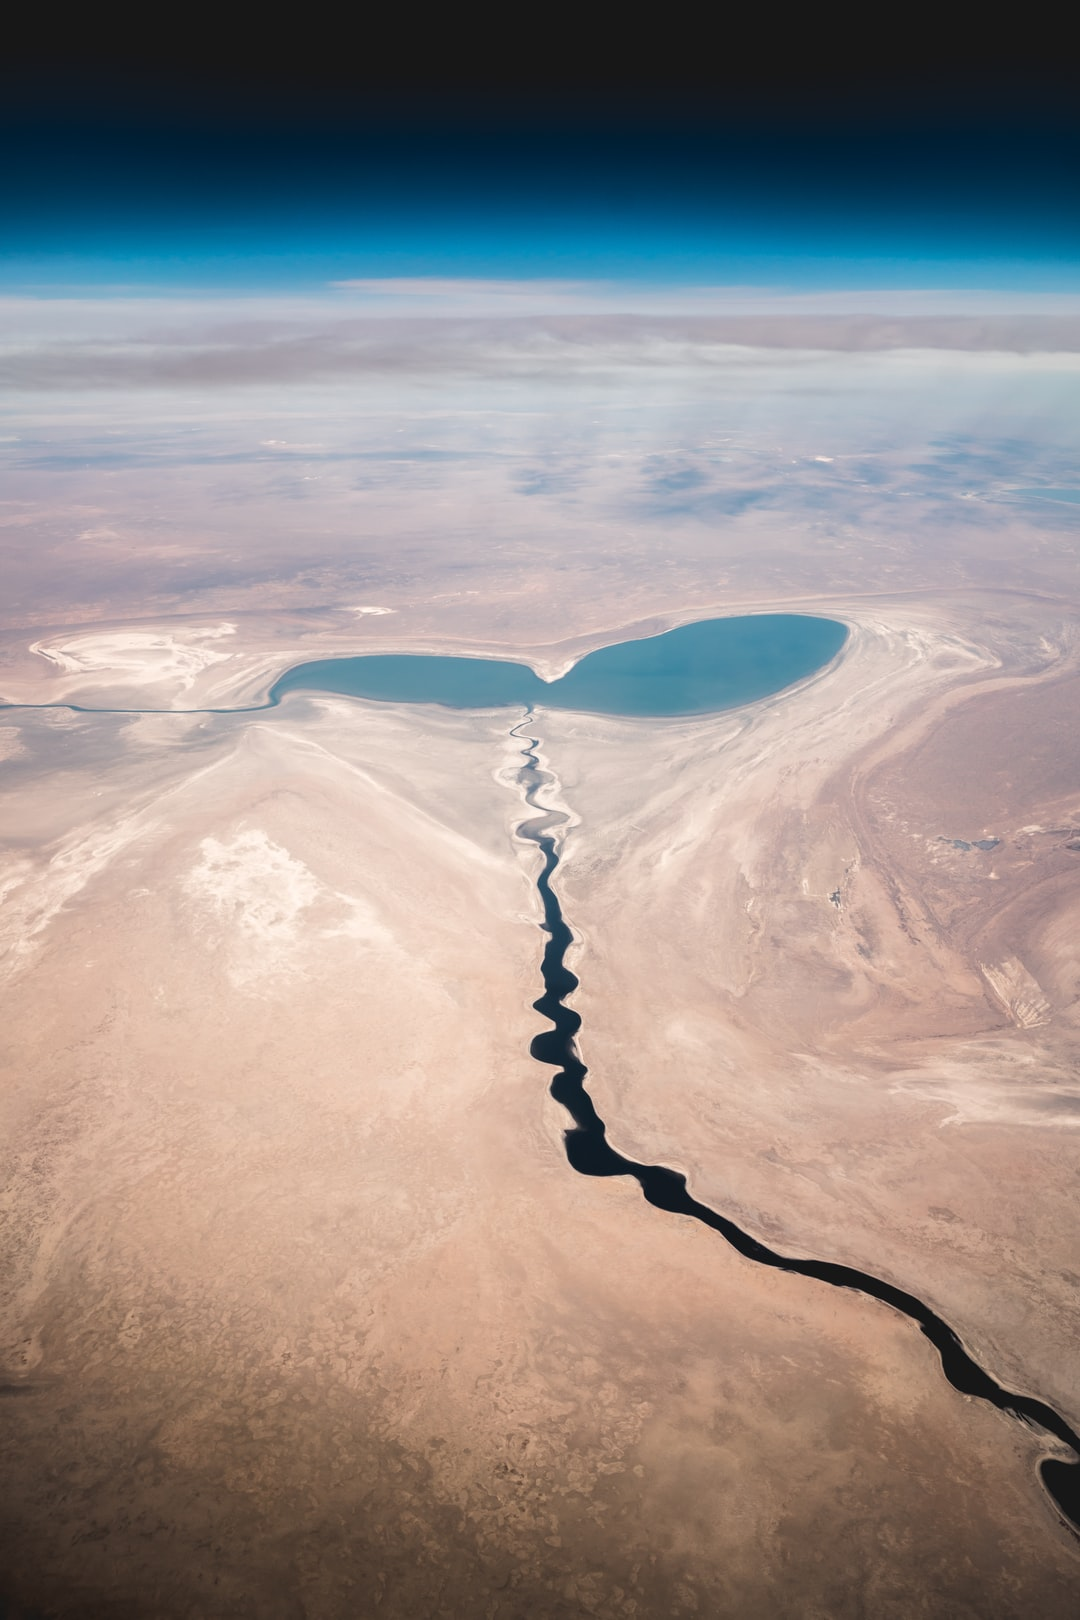 40 years ago it was the fourth largest lake in the world. Now, only a few puddles are left. Like this mini-lake that looks like a bleeding out heart. Sad view out of my airplane window.